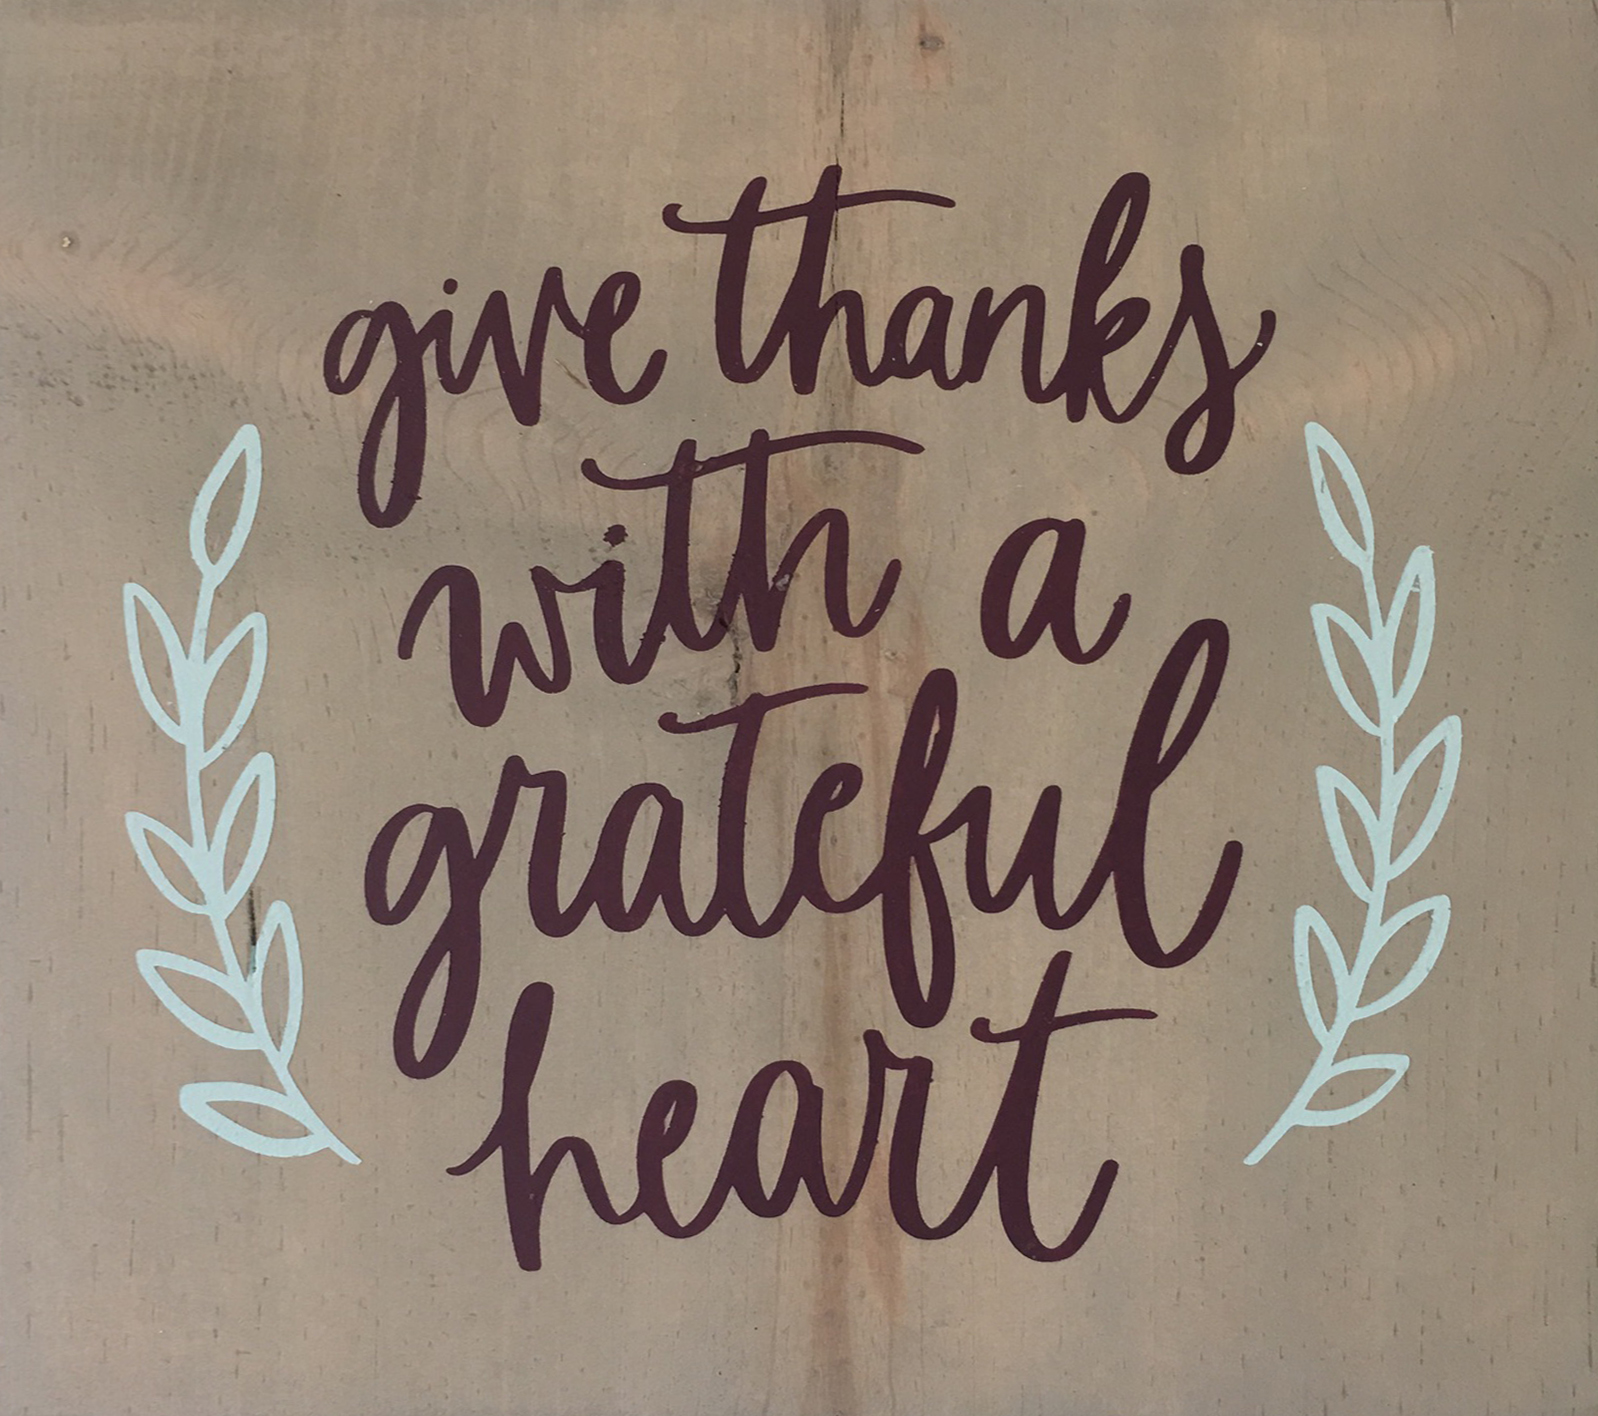 #92 Give Thanks Grateful Hearts